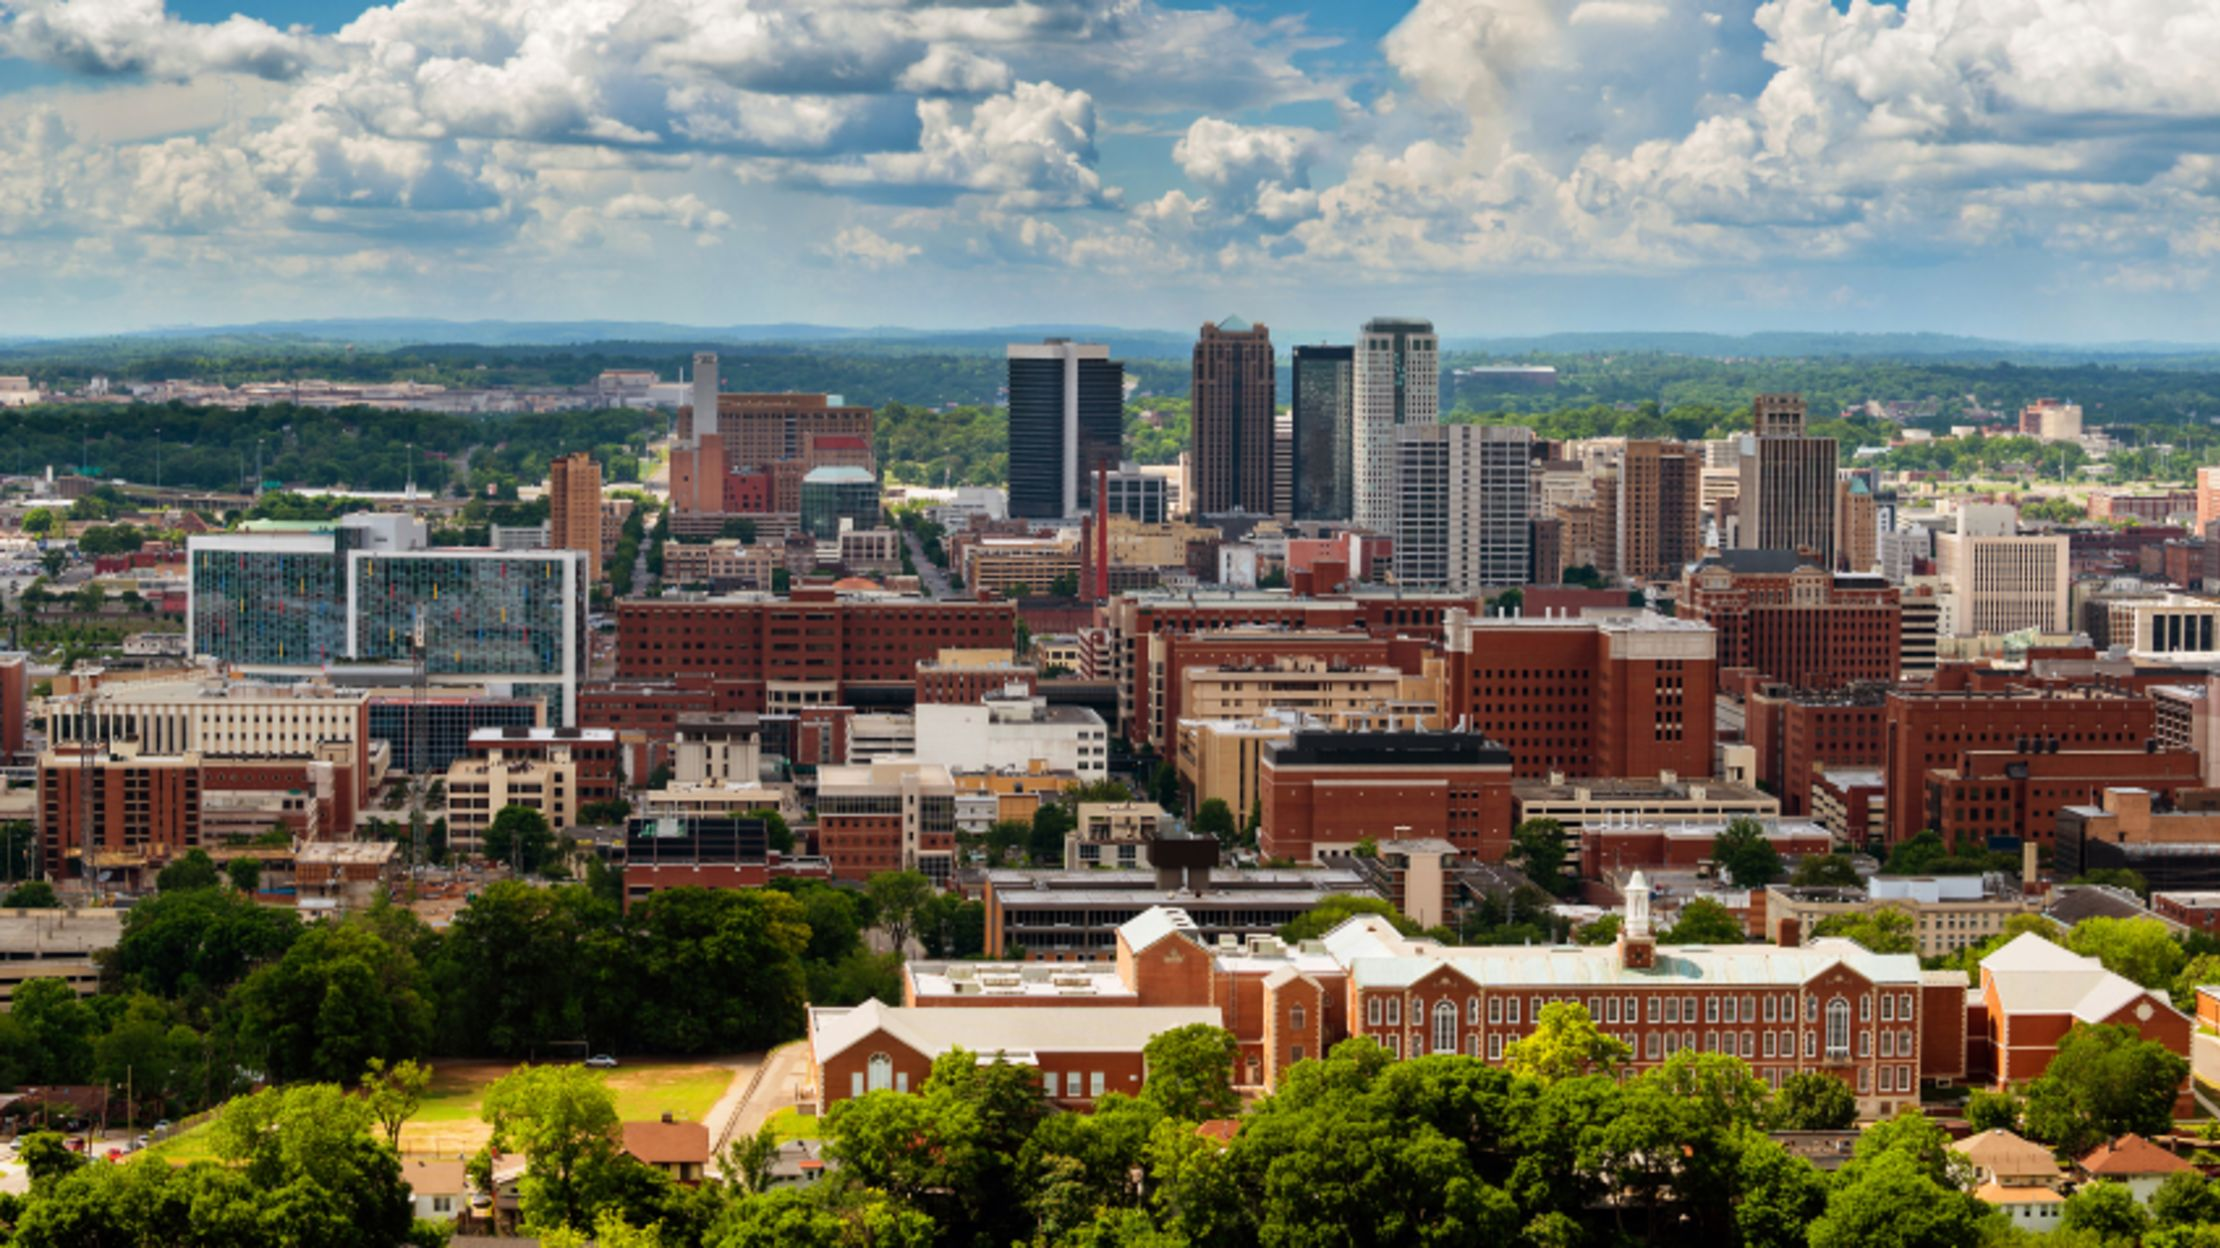 25 Things You Should Know About Birmingham, Alabama | Mental Floss